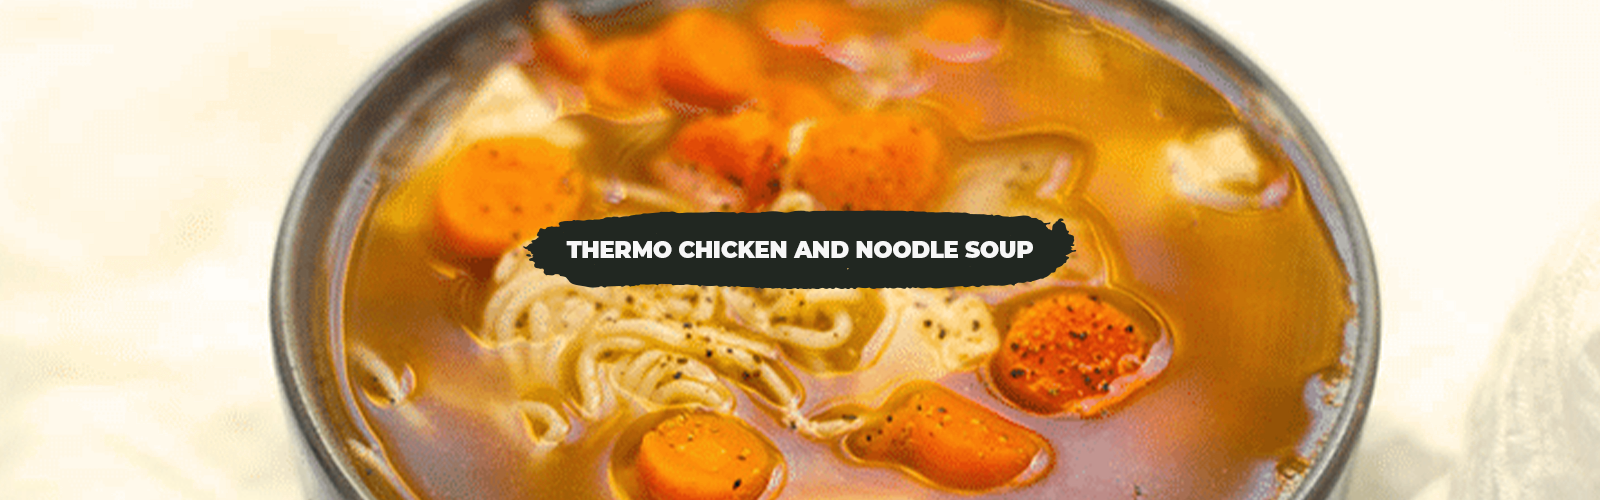 Thermo Chicken and Noodle Soup